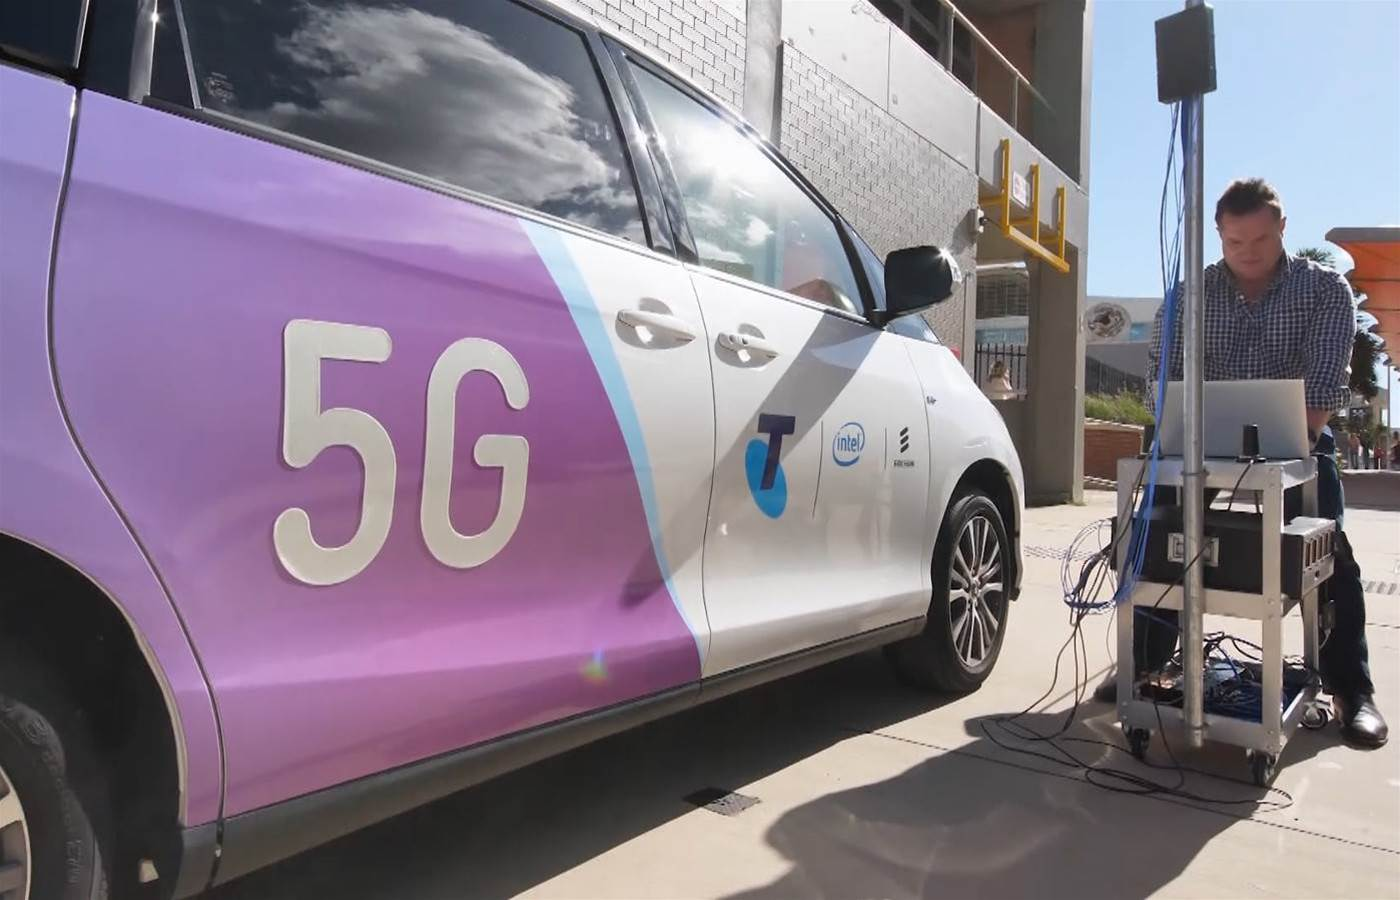 Telstra says it will have first dibs on 5G smartphones